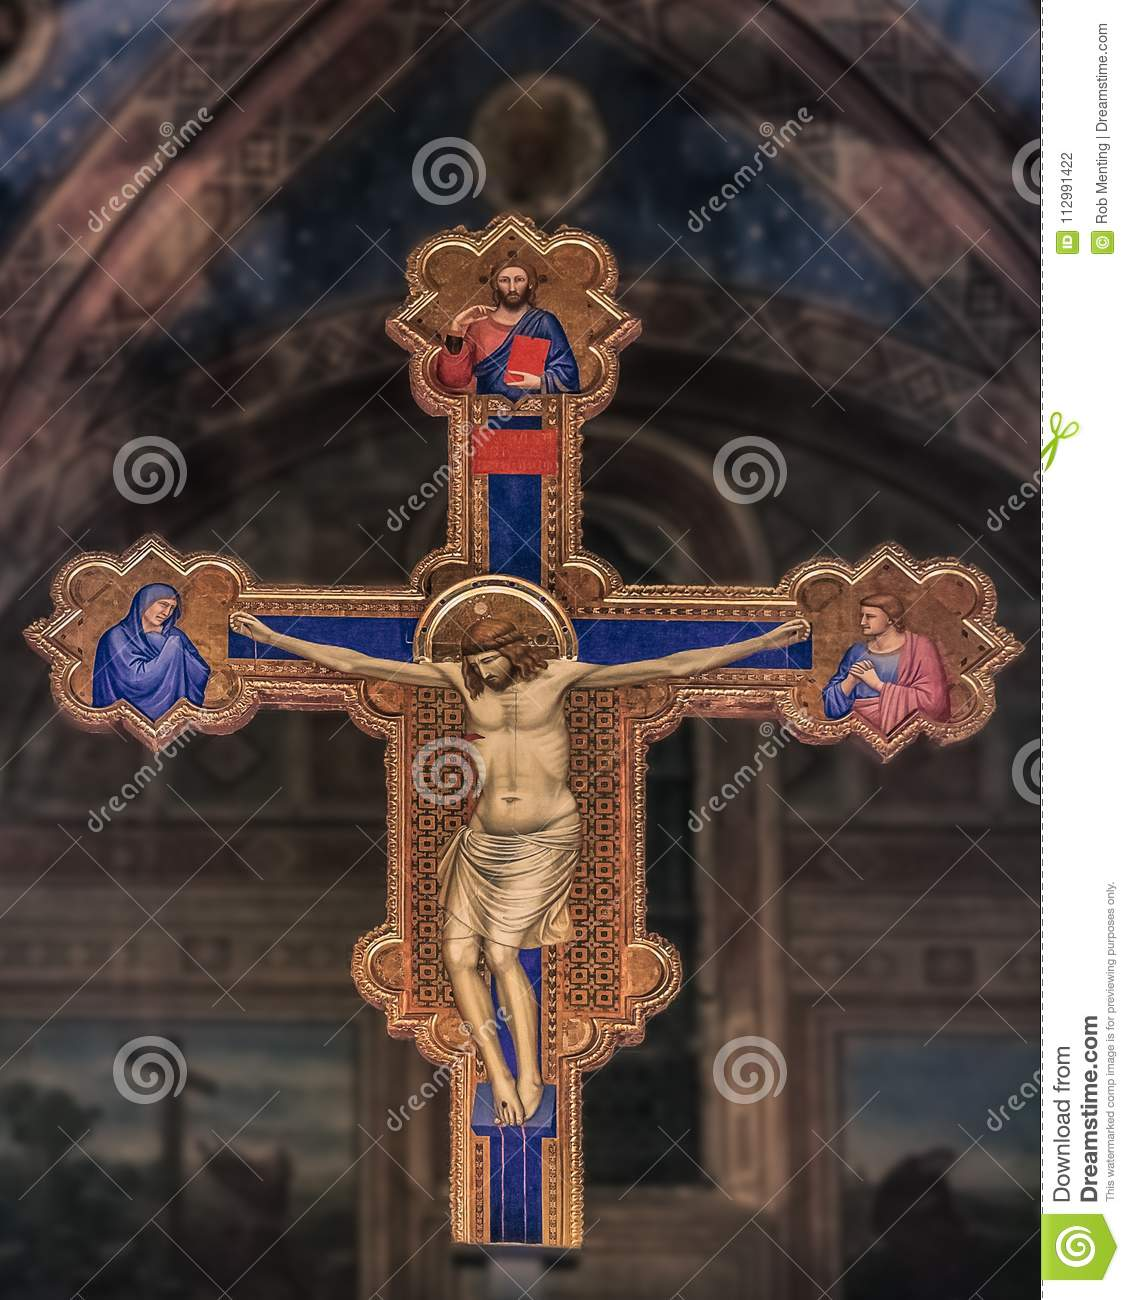 Cross in the Ognissanti church in Florence